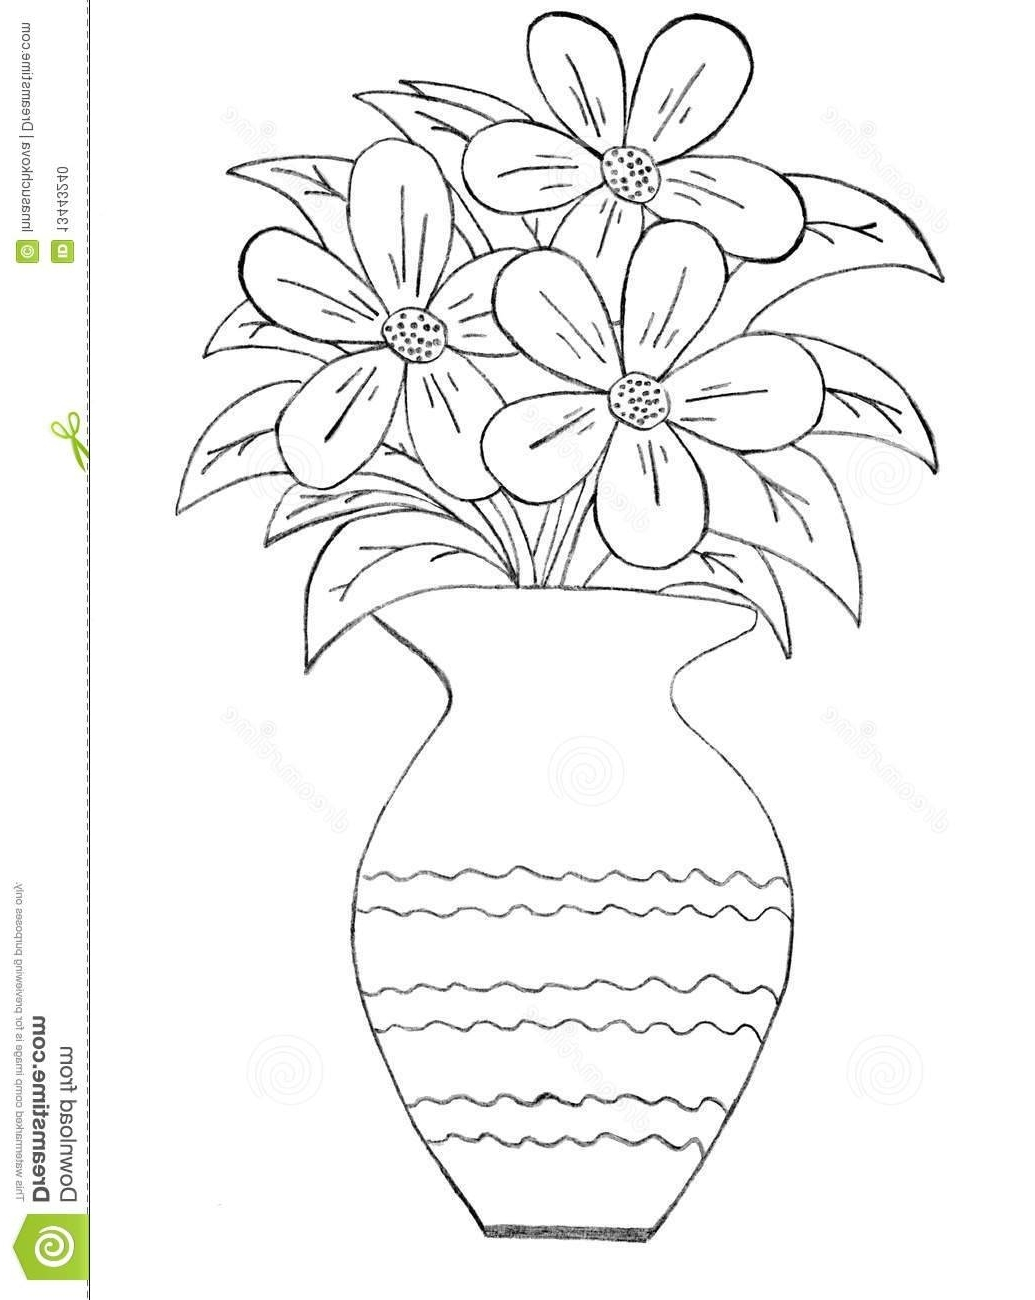 Easy Flower Drawing For Kids At Getdrawings Com Free For Personal